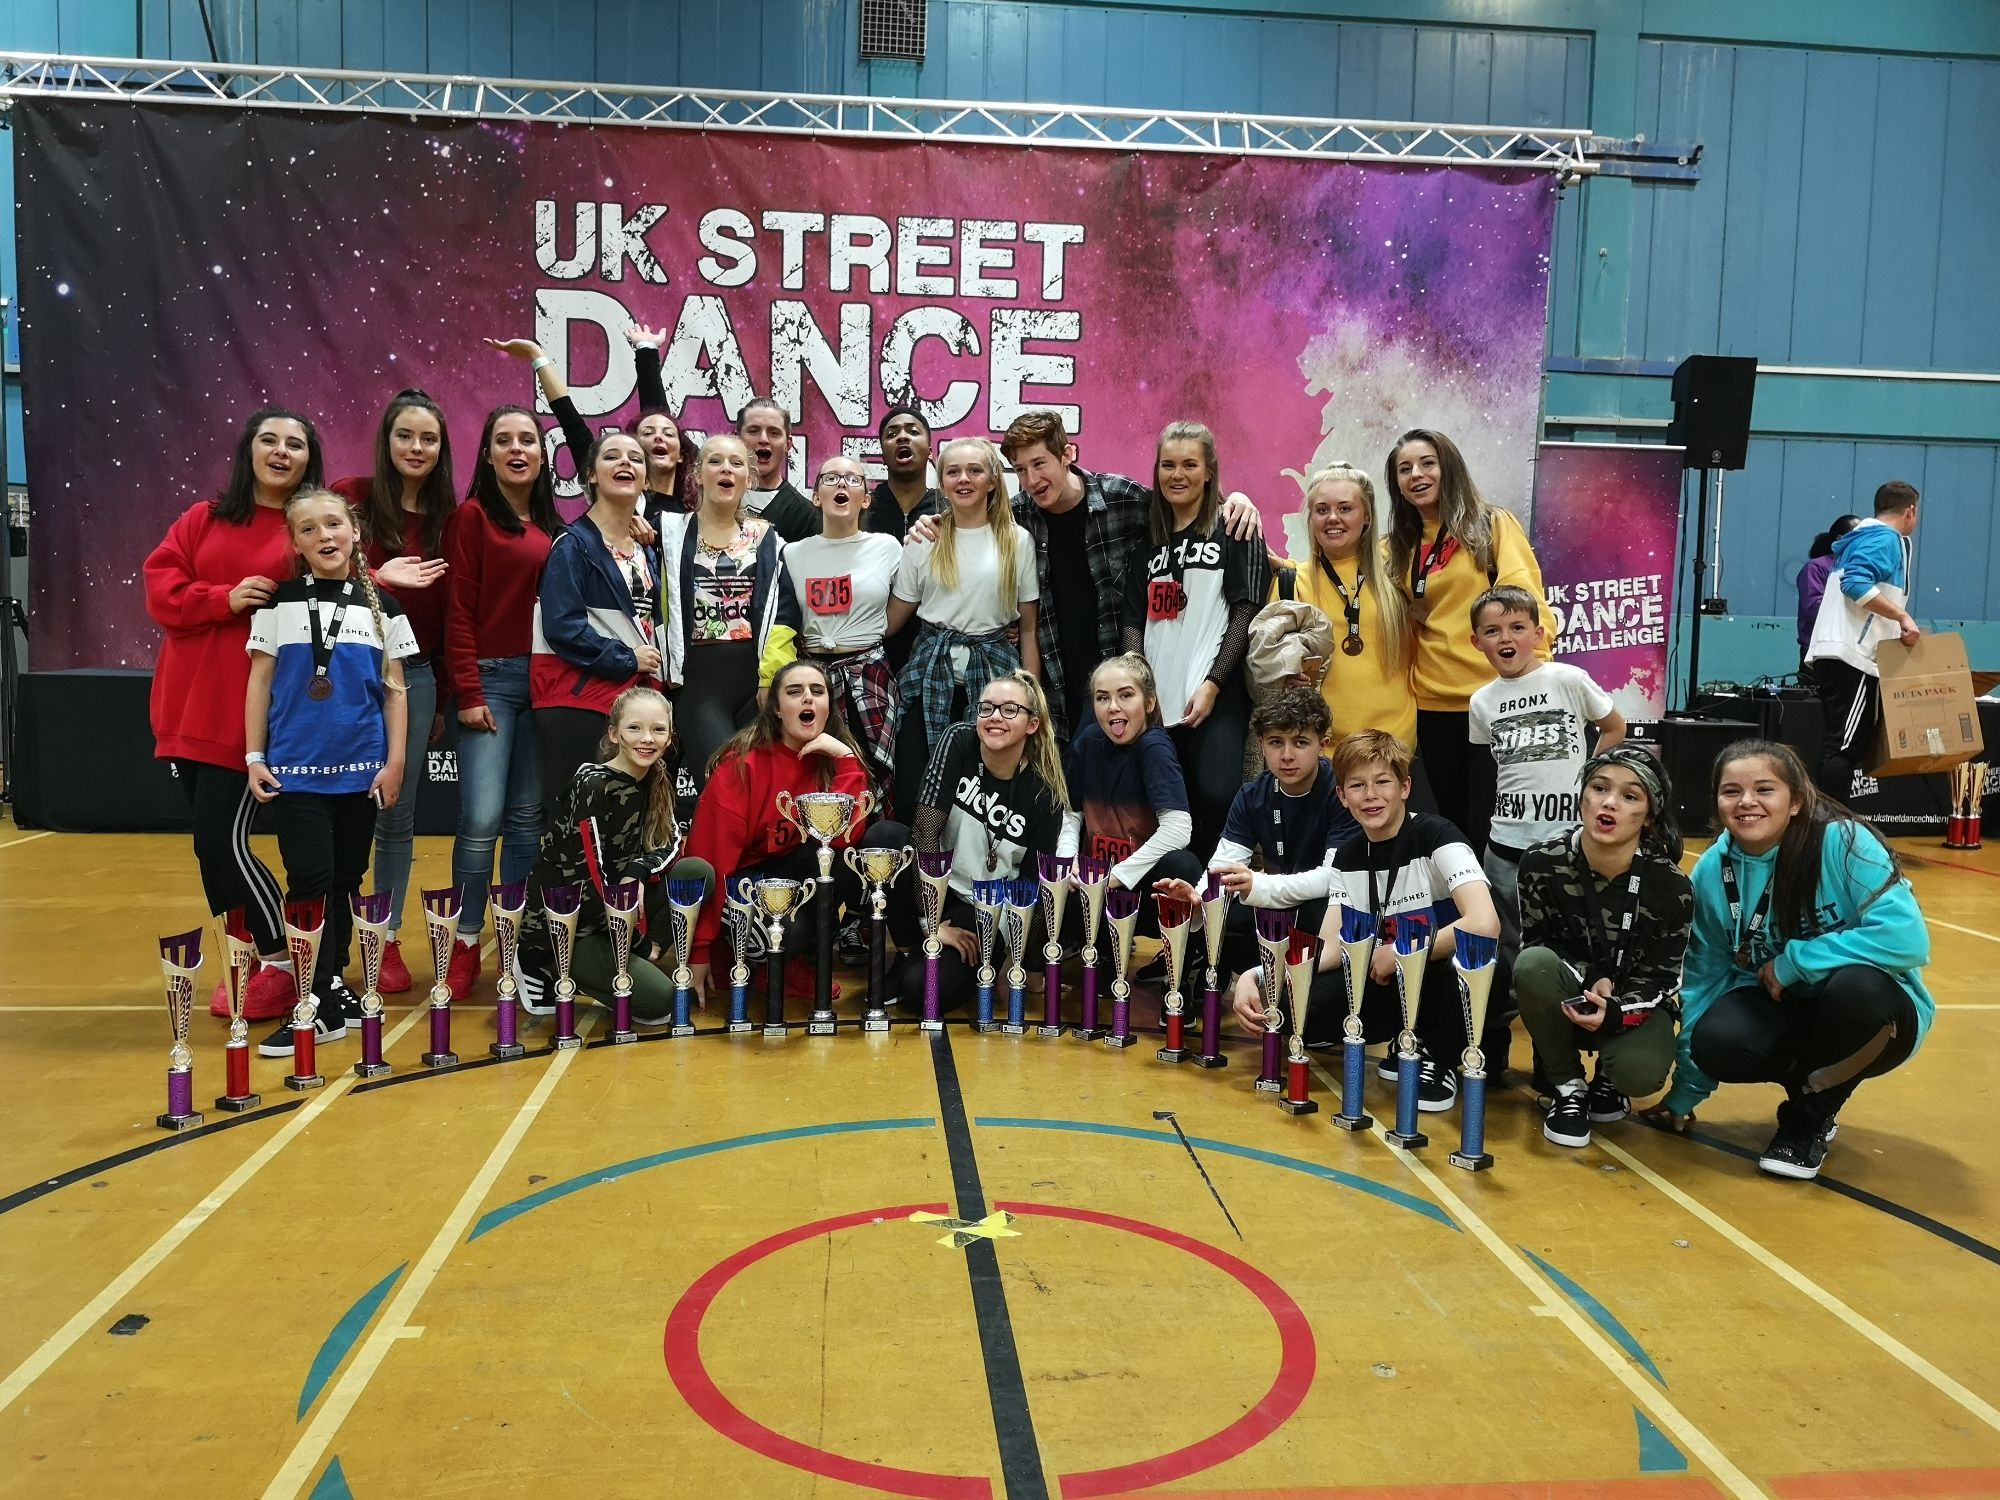 Starpower Manchester 2019 award winning school and students from cornwall dance school based in truro, falmouth and Helston. Performing arts, group routine, solo routines, winners, studio of excellence, international mention, cornwall classes dance, dancers, kids, adults, children, babies, adults, lessons, workshops, competition, teams, crews, dance together, work hard, safe practise, performing arts school, various styles of dance lessons, lyrical, contemporary, streetdance, ballet, jazz, musical theatre, singing lessons private lessons, wedding lessons, hen party lessons, fun, friendly, family, fully qualified teachers, first aid trained dance teachers, studio space truro, falmouth classes, helston classes, lyrical, technique classes, fitness classes, exam lessons, idta exams, IDTA Dance School, term dates, term times cornwall dance school students, level 4 teaching qualifications available, learn in your own time, online course, dancers welcome, dance teachers, dance sessions, dance lessons, baby ballet, stretching and strengthening, street styles, hiphop and house, locking and popping, breakdance, street, crews, teams and competing, events, performances, two shows a year, performing students, performance licence, performing arts school , teaching lessons, IDTA Fellow